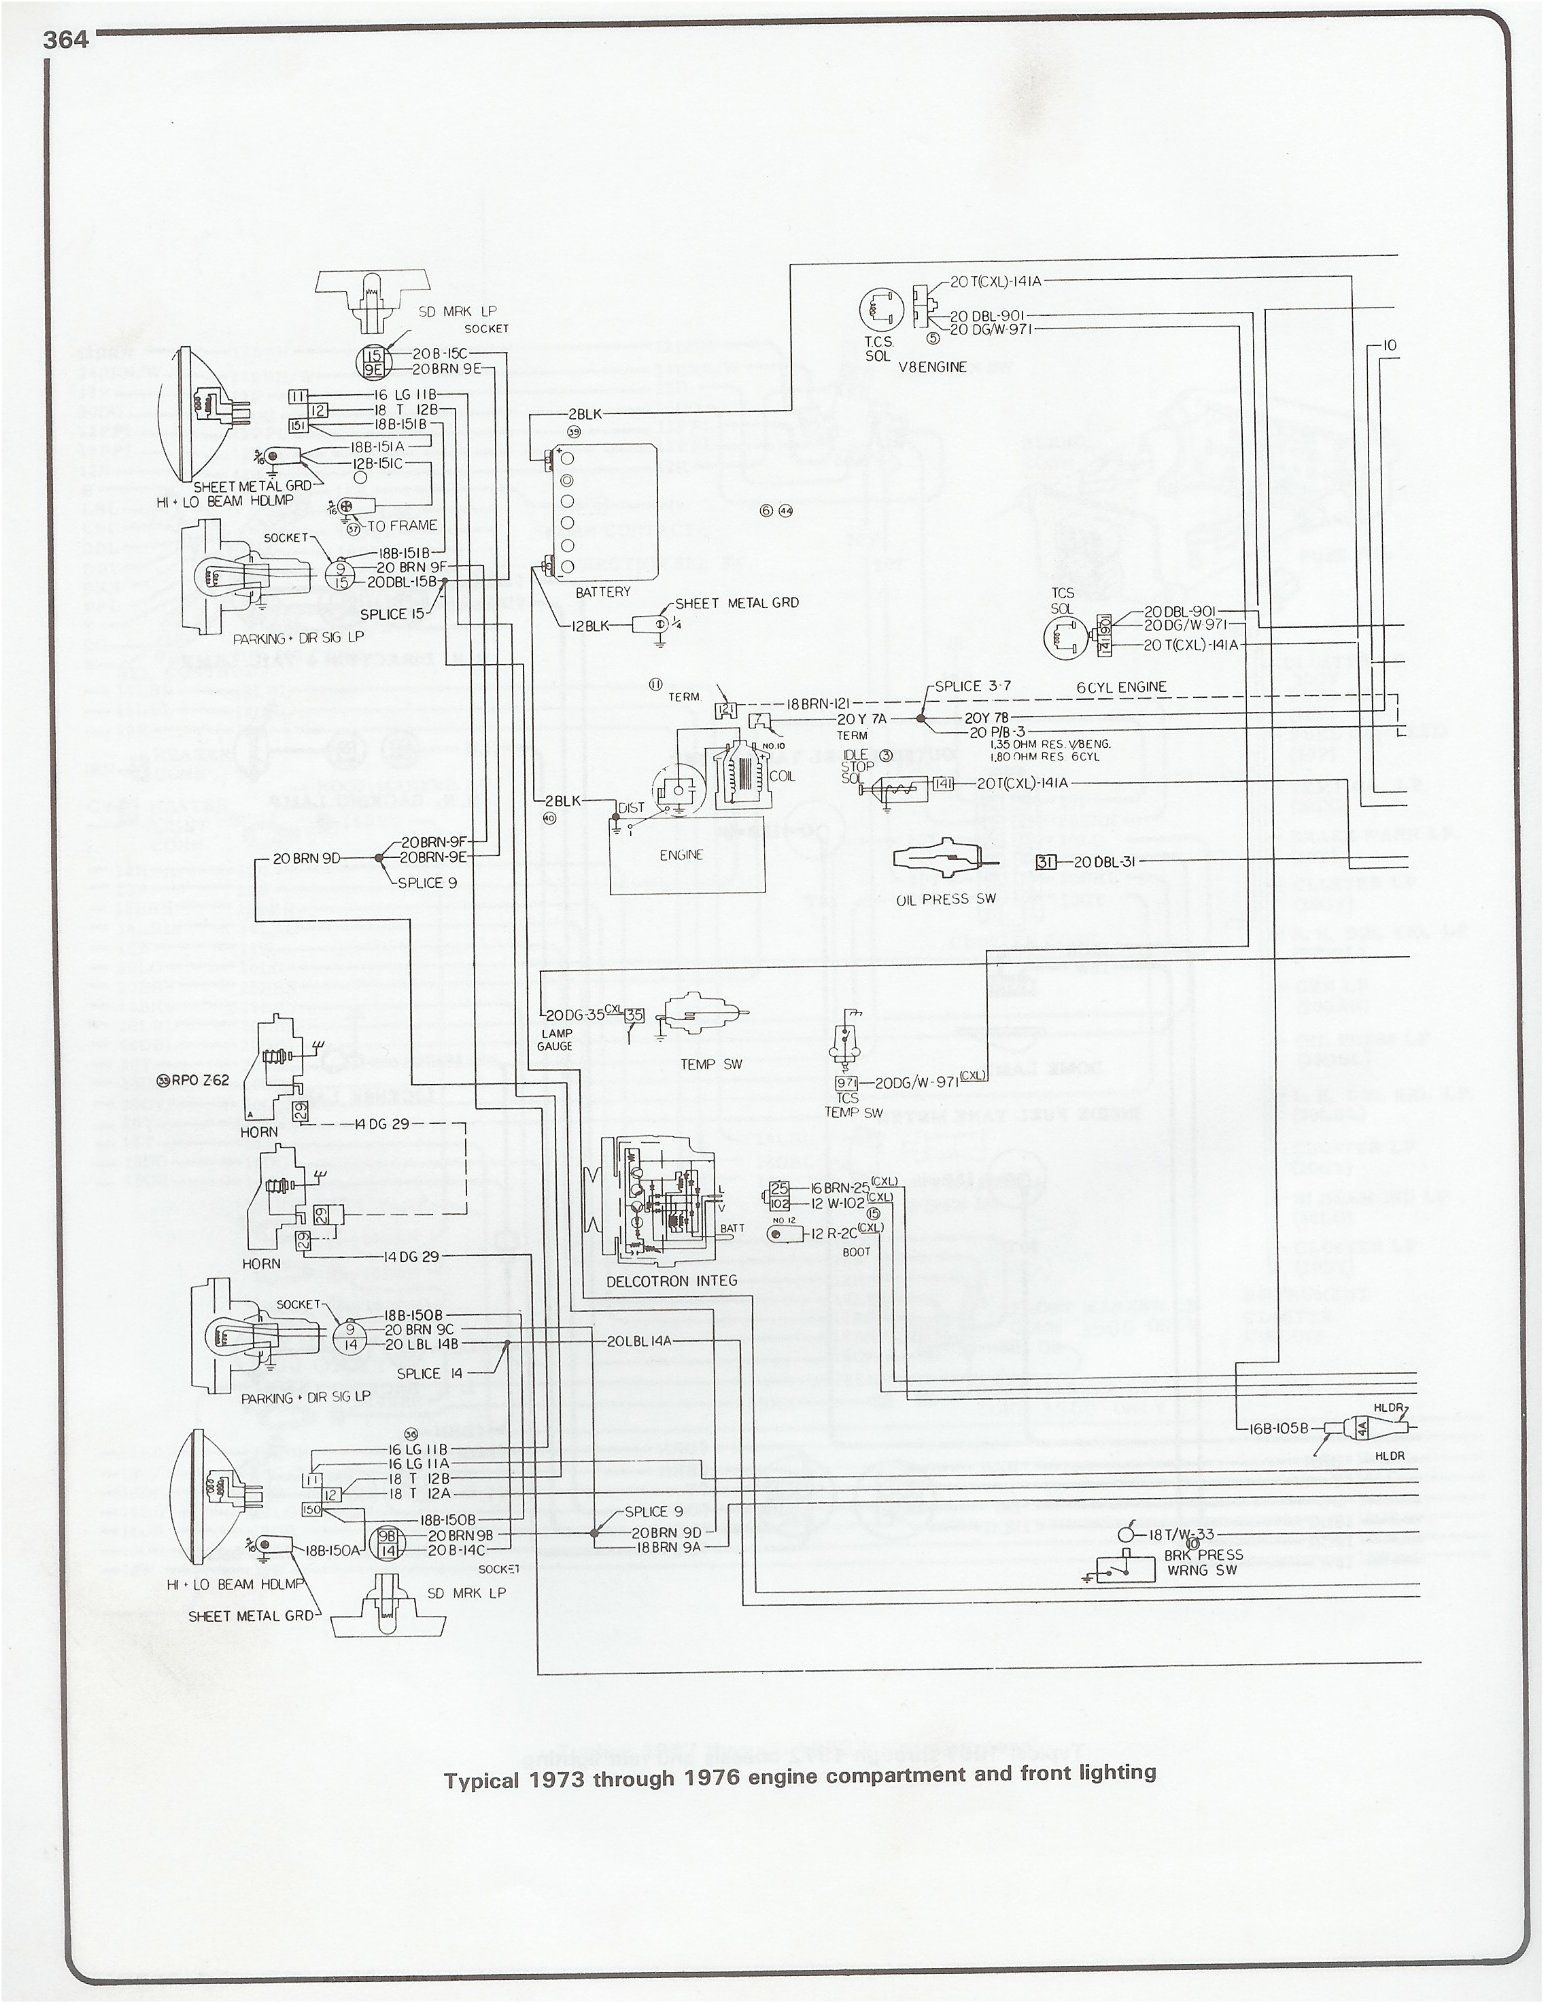 b46c0c014ab7ae7becc2b916945faf15 wiring diagram 1973 1976 chevy pickup chevy wiring diagram  at soozxer.org